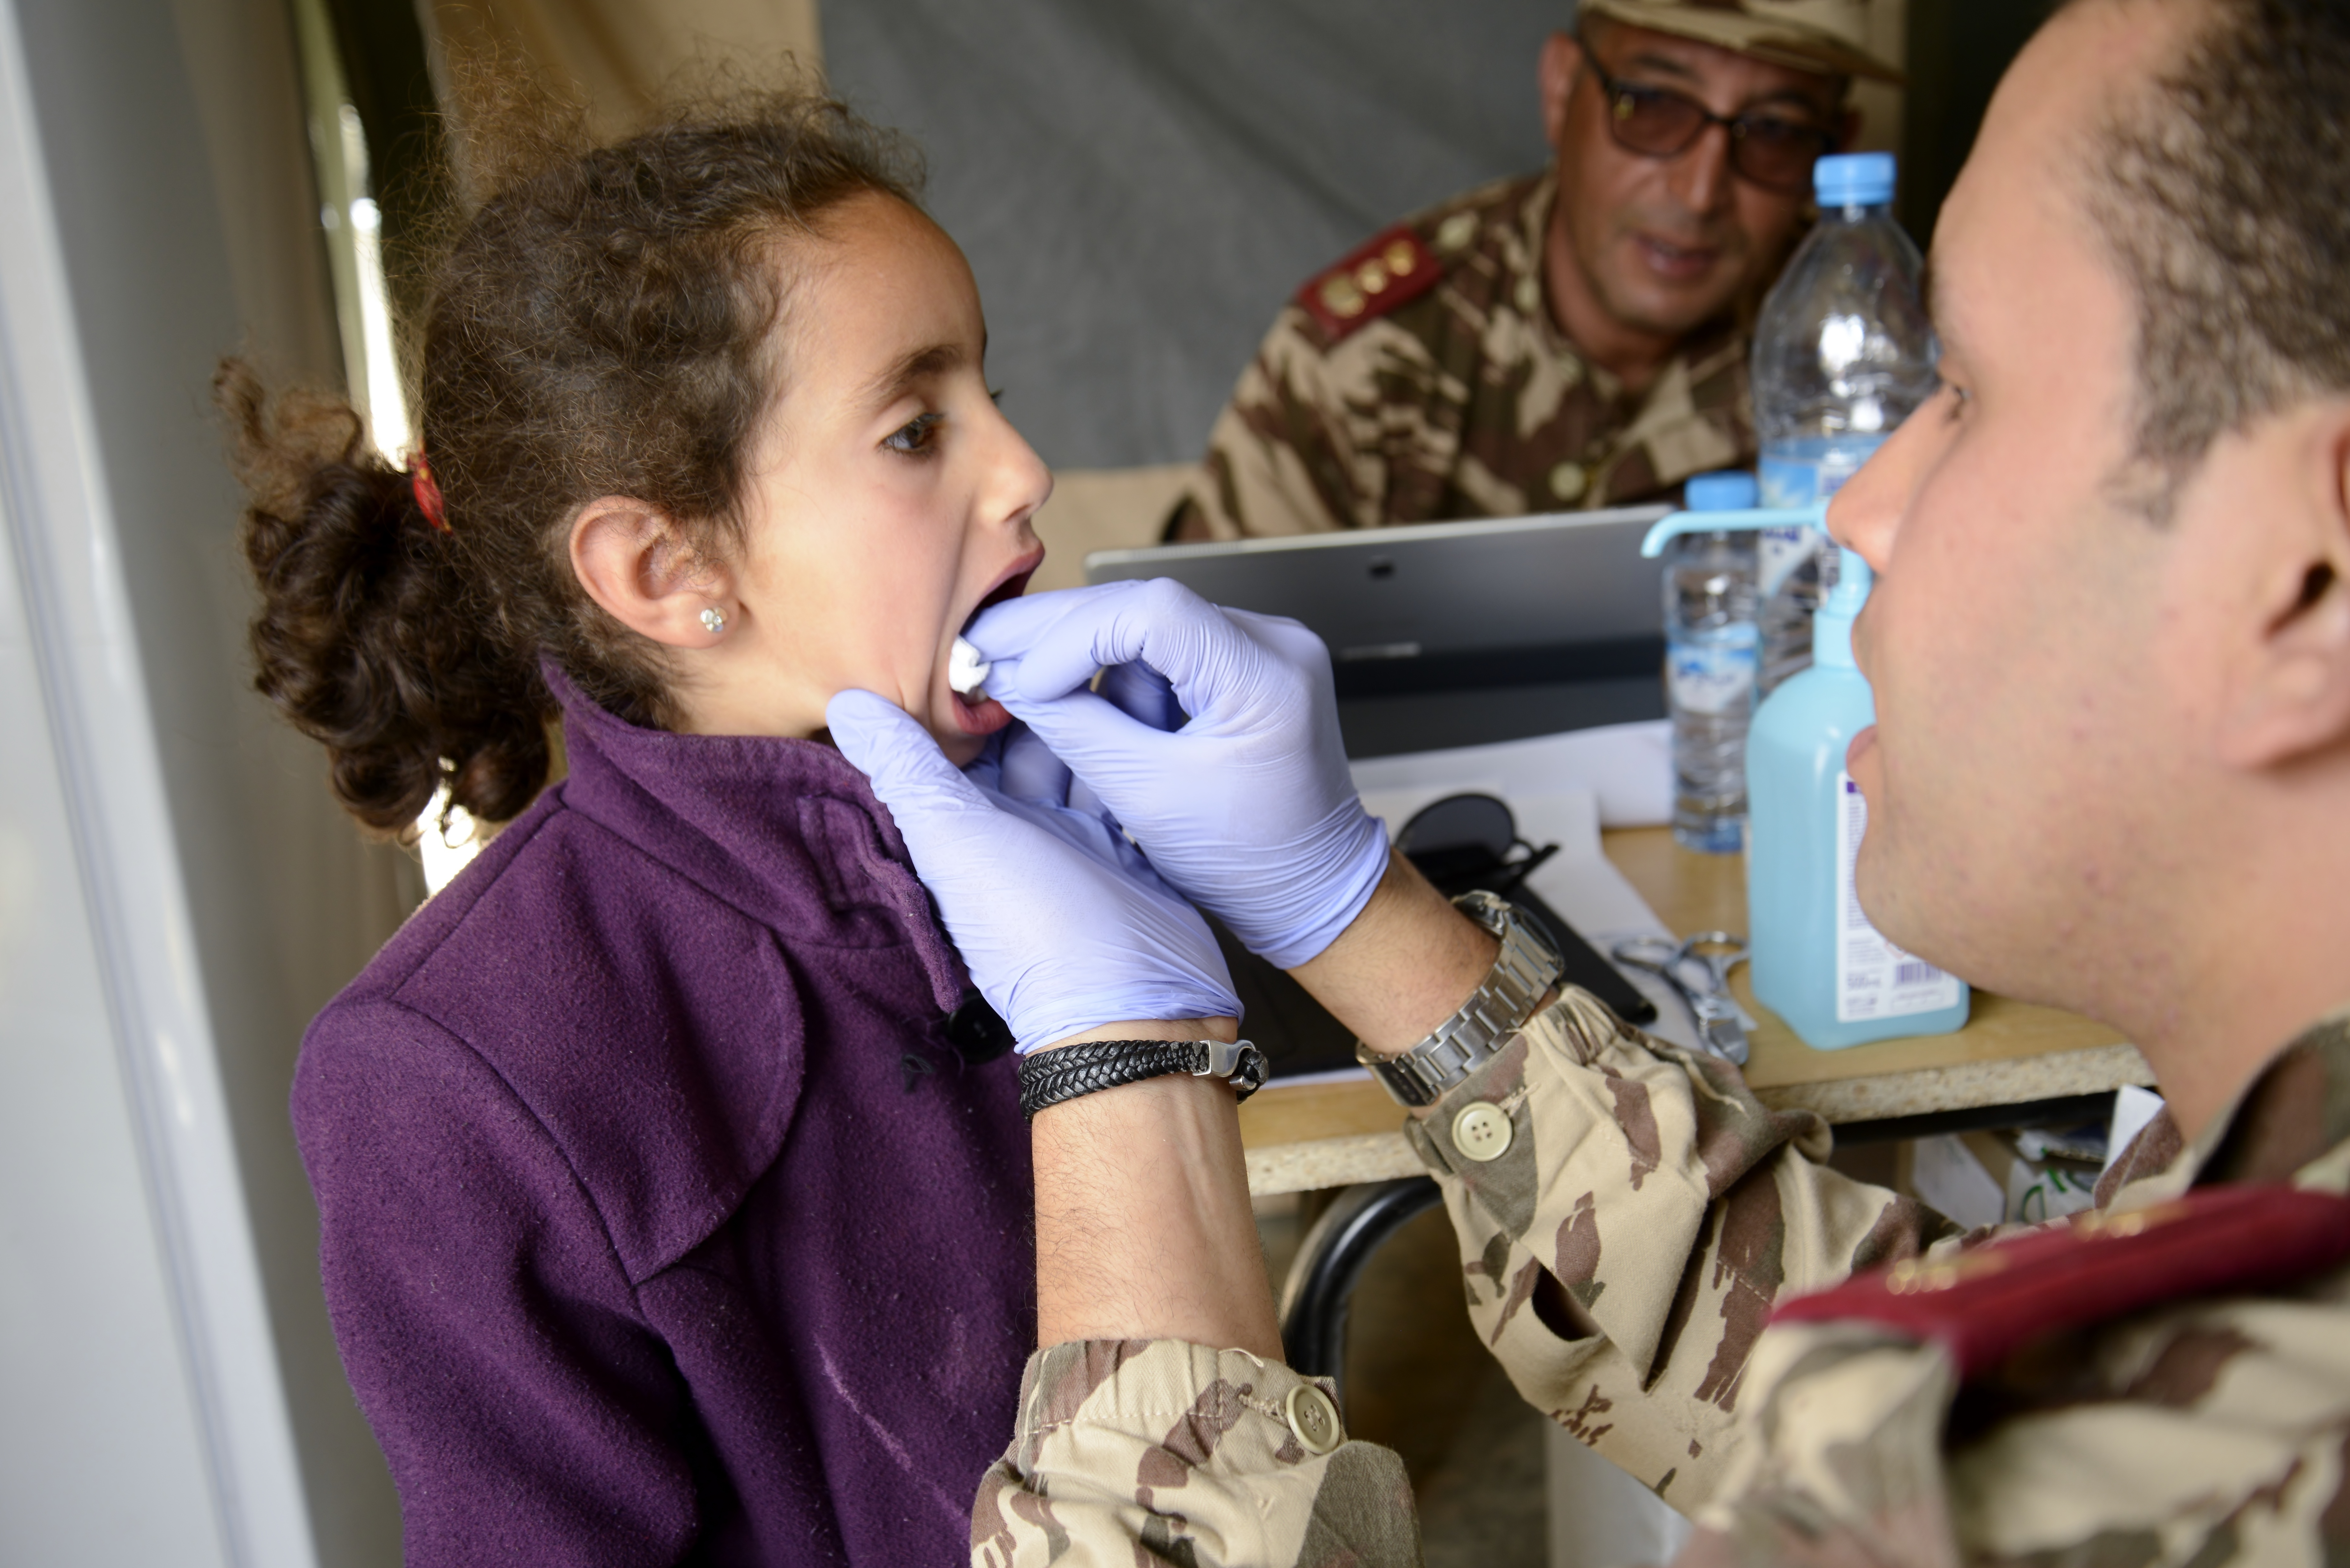 Moroccan 1stLt. Hamza Layat, a pharmacist and member of the Moroccan Royal Armed Forces, provides aid to a girl after a having a dental procedure during the Humanitarian Civic Assistance component of Exercise African Lion 2018 in Bounaamane, Morocco, April 25, 2018.  Exercise African Lion 2018 is a Chairman of the Joint Chiefs of Staff-sponsored, U.S. African Command-scheduled, U.S. Marine Corps Forces Europe and Africa-led, joint and combined exercise conducted in the Kingdom of Morocco. African Lion offers an opportunity to improve interoperability and cooperation while demonstrating the strong military bond that exists between the participating nations. (U.S. Army National Guard photo by Maj. Samantha Madsen)